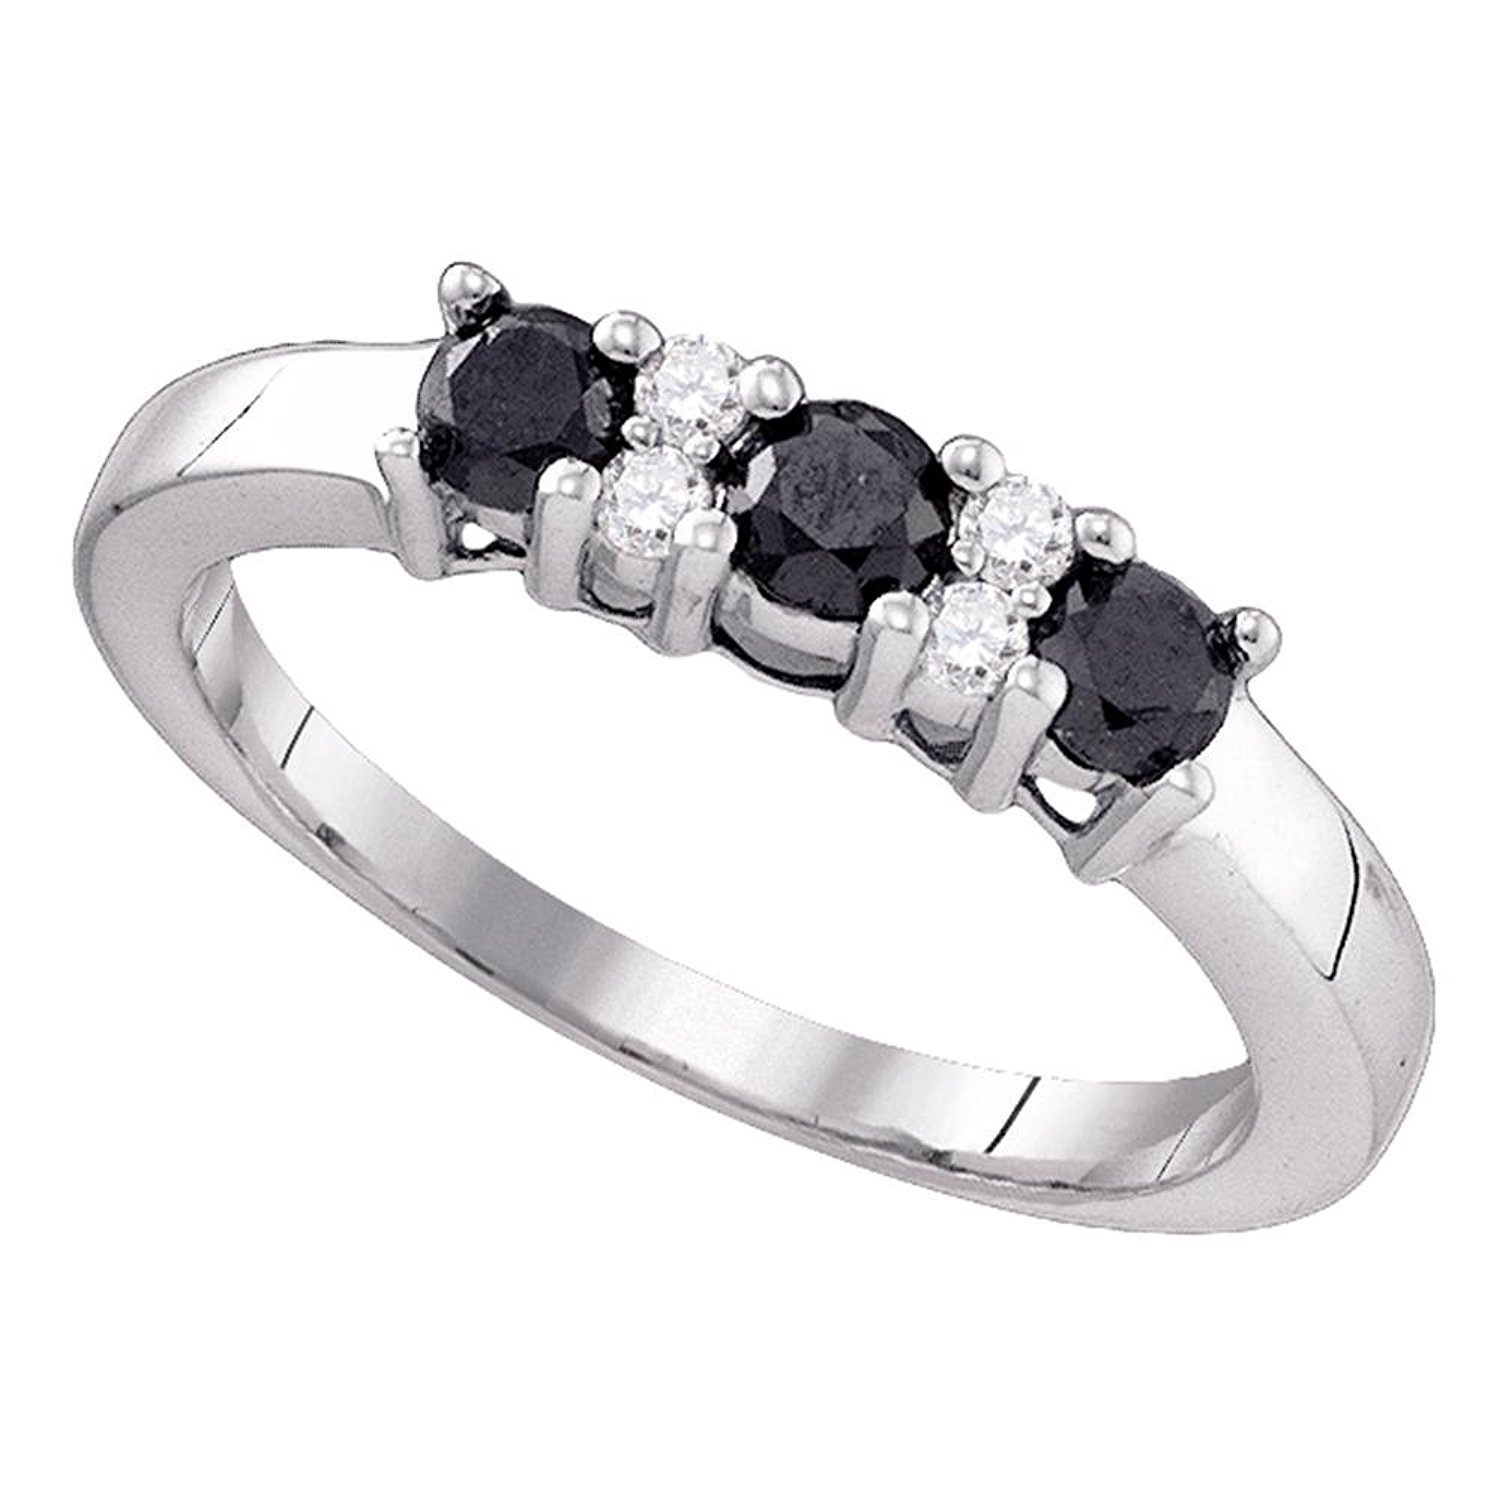 Cheap 5 Stone Diamond Anniversary Ring, Find 5 Stone Diamond Pertaining To Latest Enhanced Black Diamond Anniversary Bands In 10K White Gold (View 13 of 15)